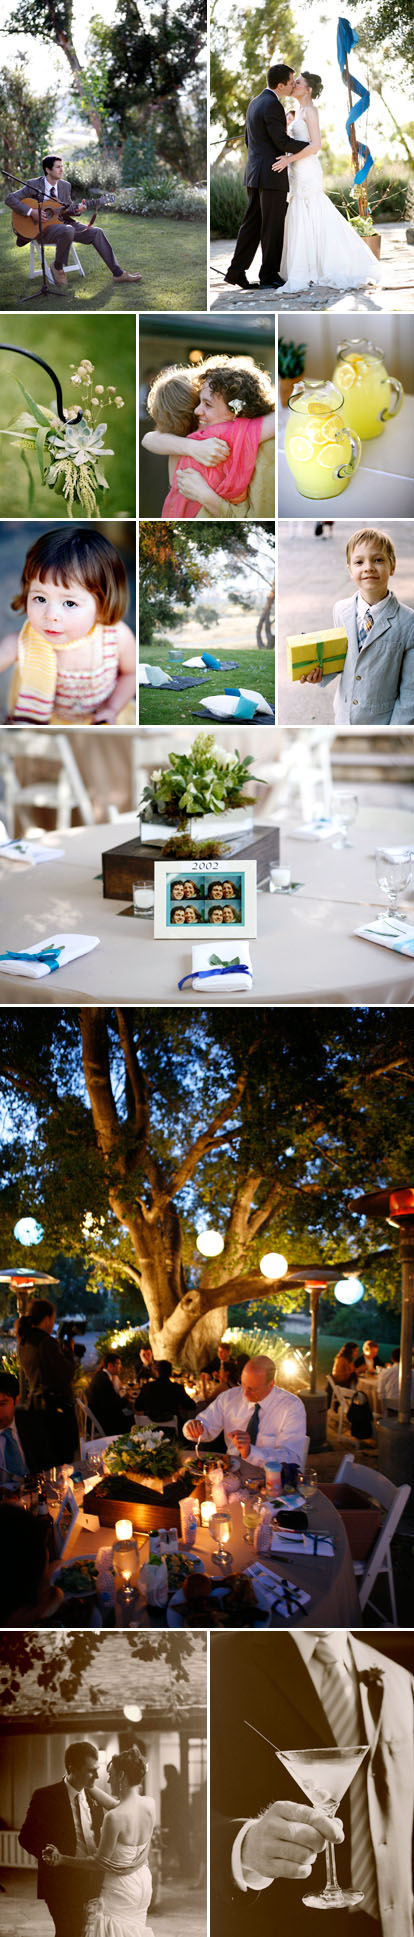 COutdoor BBQ summer real wedding images by Belathee Photography, peacock blue, lime green, ivory and gold wedding color palette